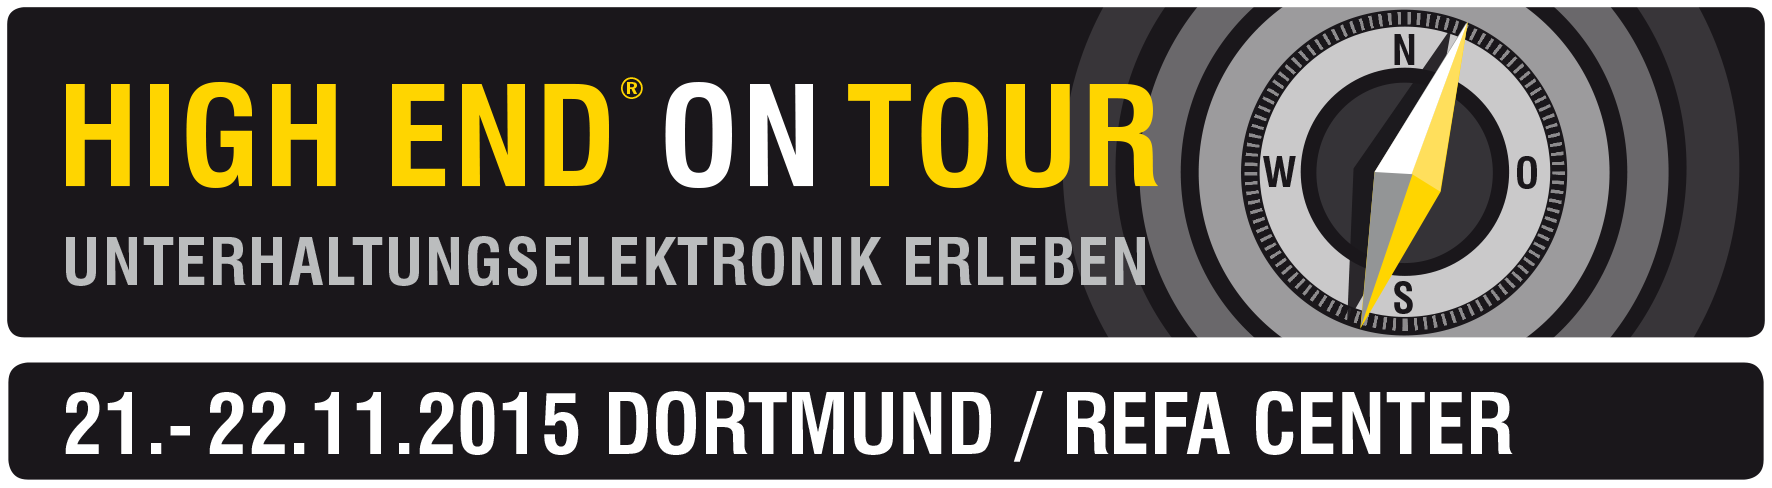 HIGH END on Tour 2015, Dortmund